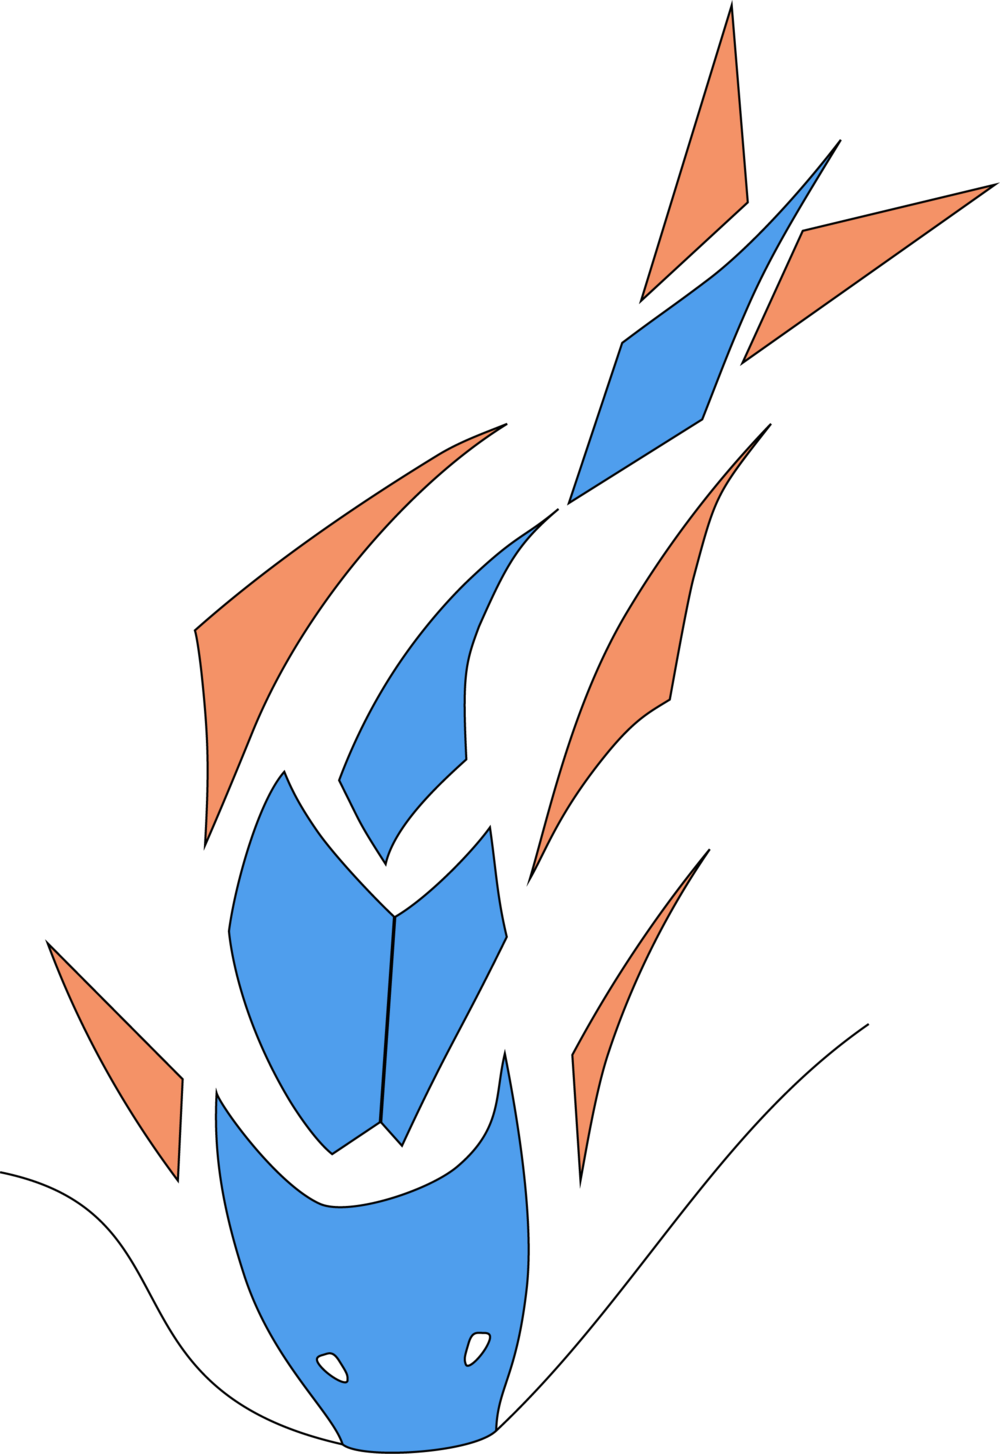 Koi logo final.png